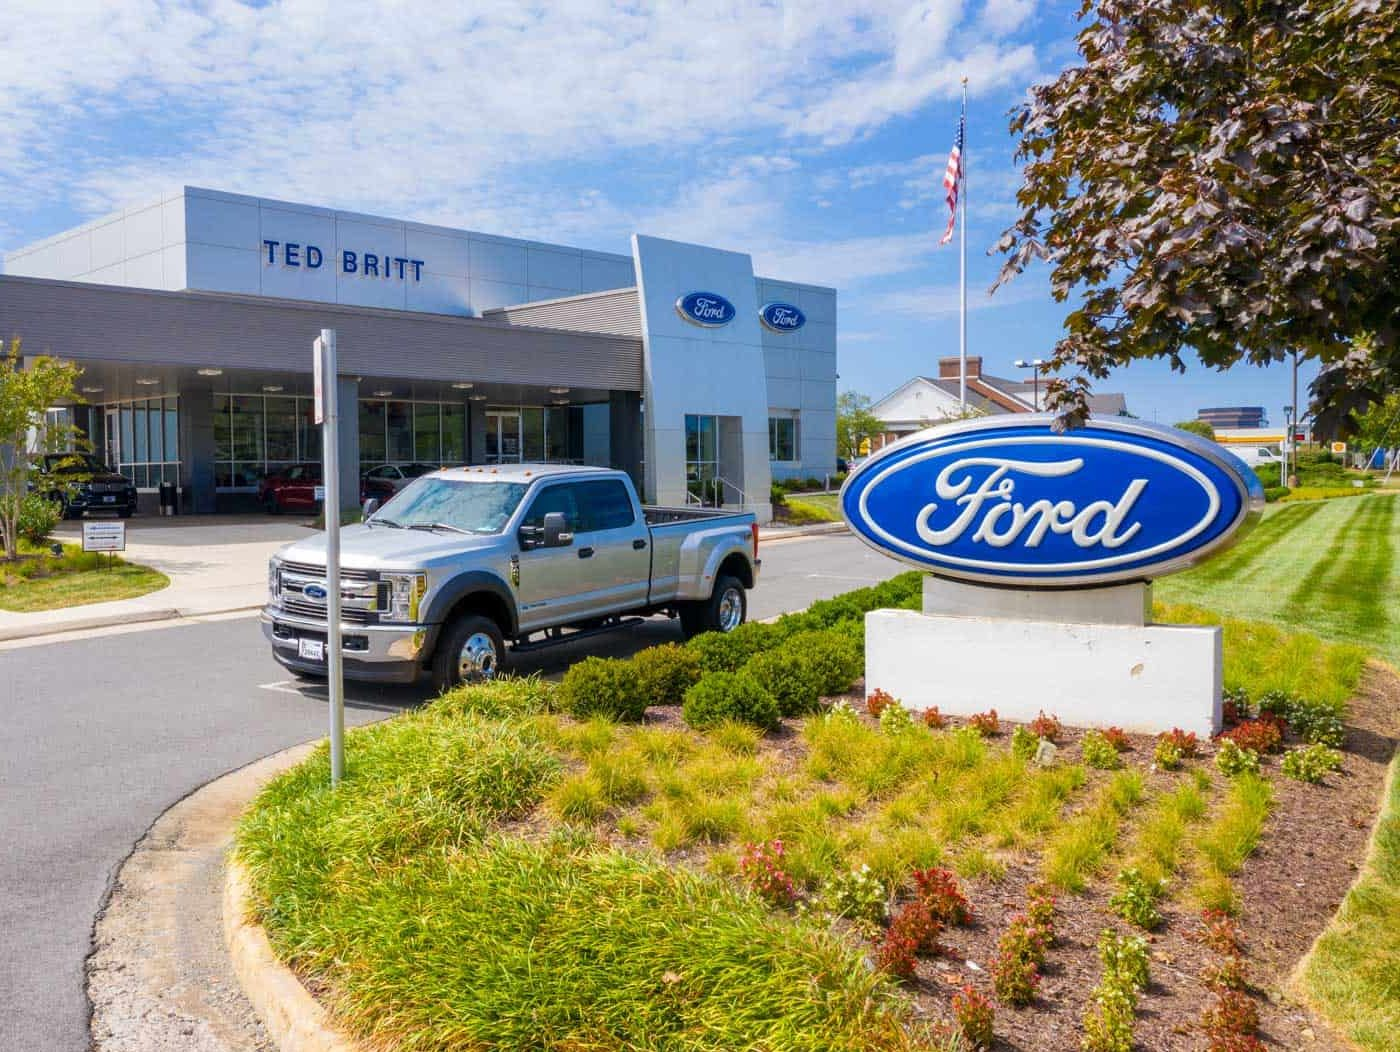 low altitude drone photo of front of Ford dealership with F150 truck parked in front in Fairfax, VA